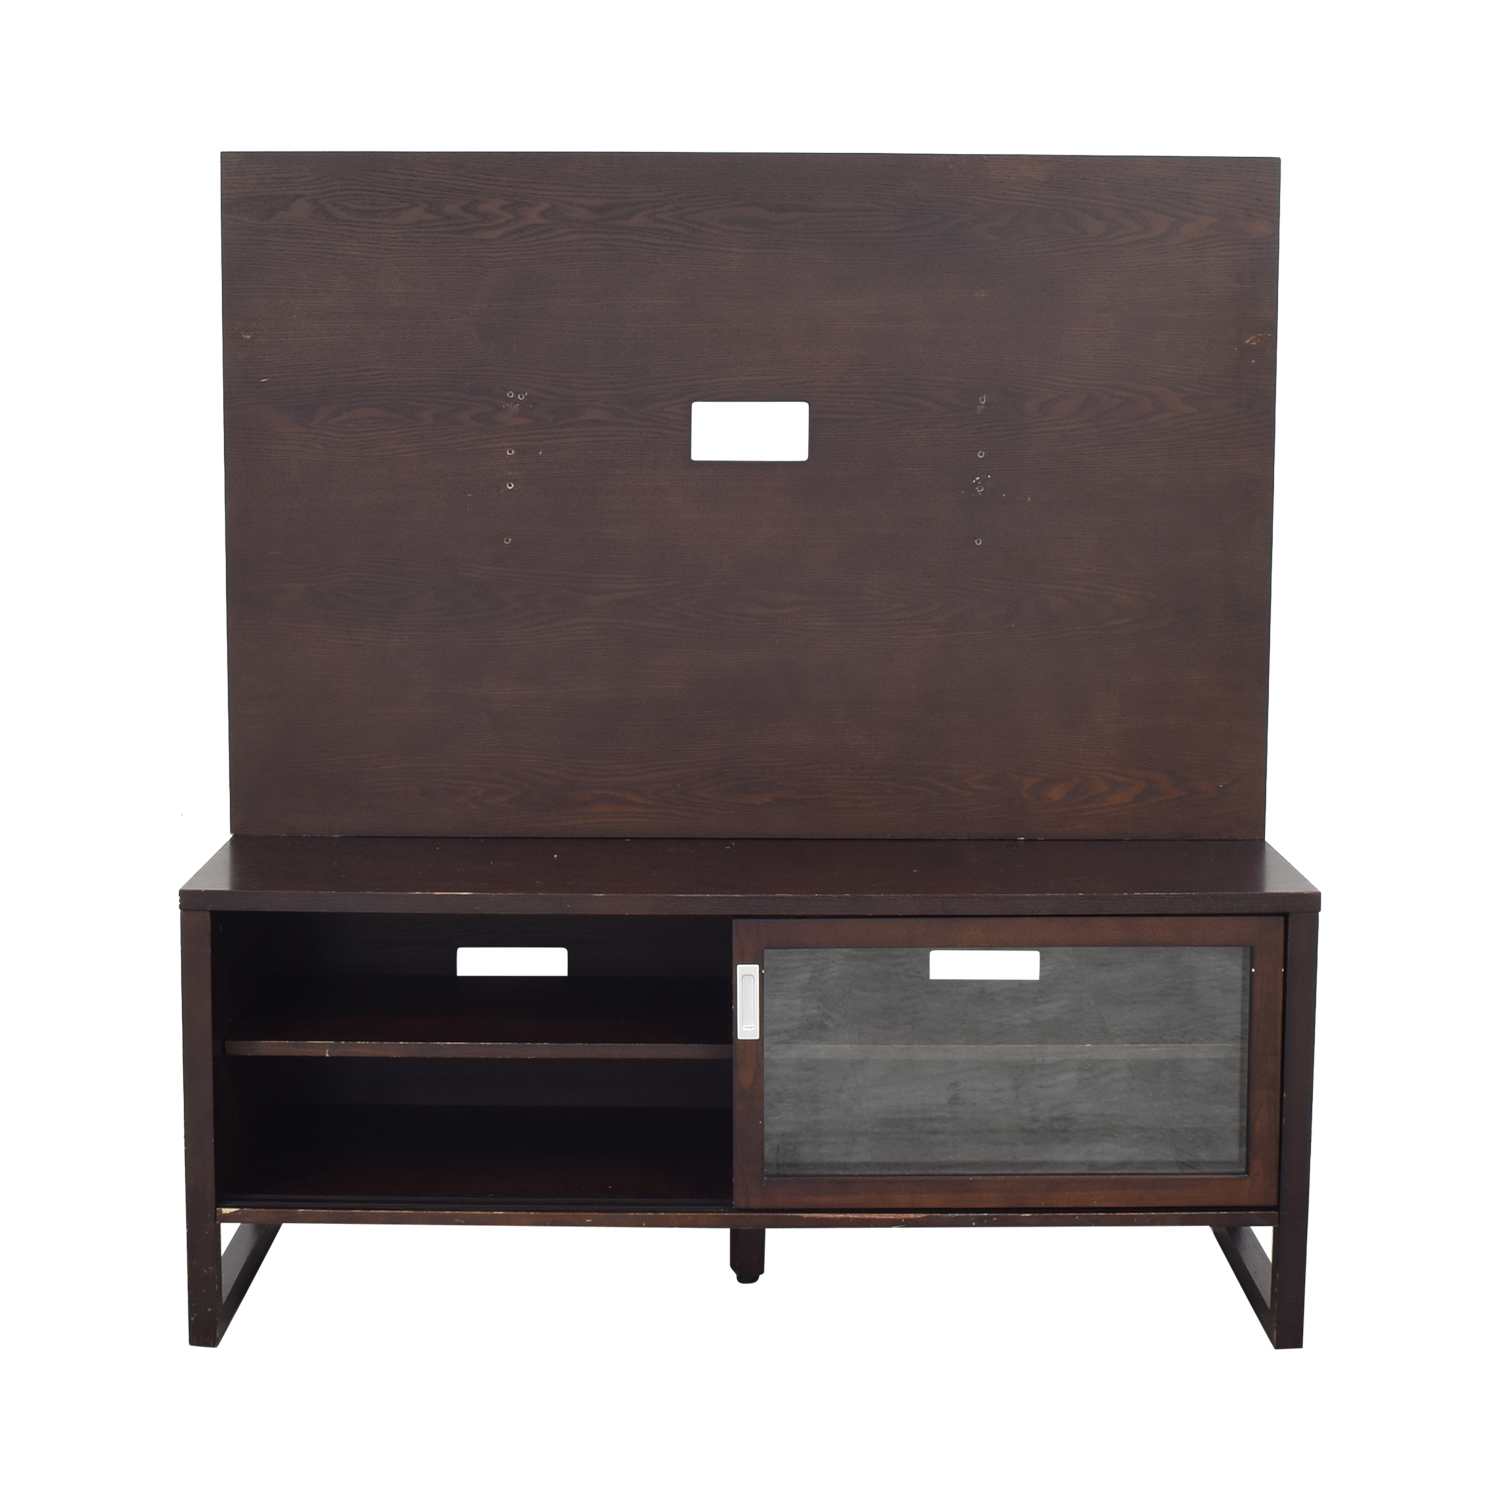 Crate & Barrel Entertainment Console with Back Panel / Storage